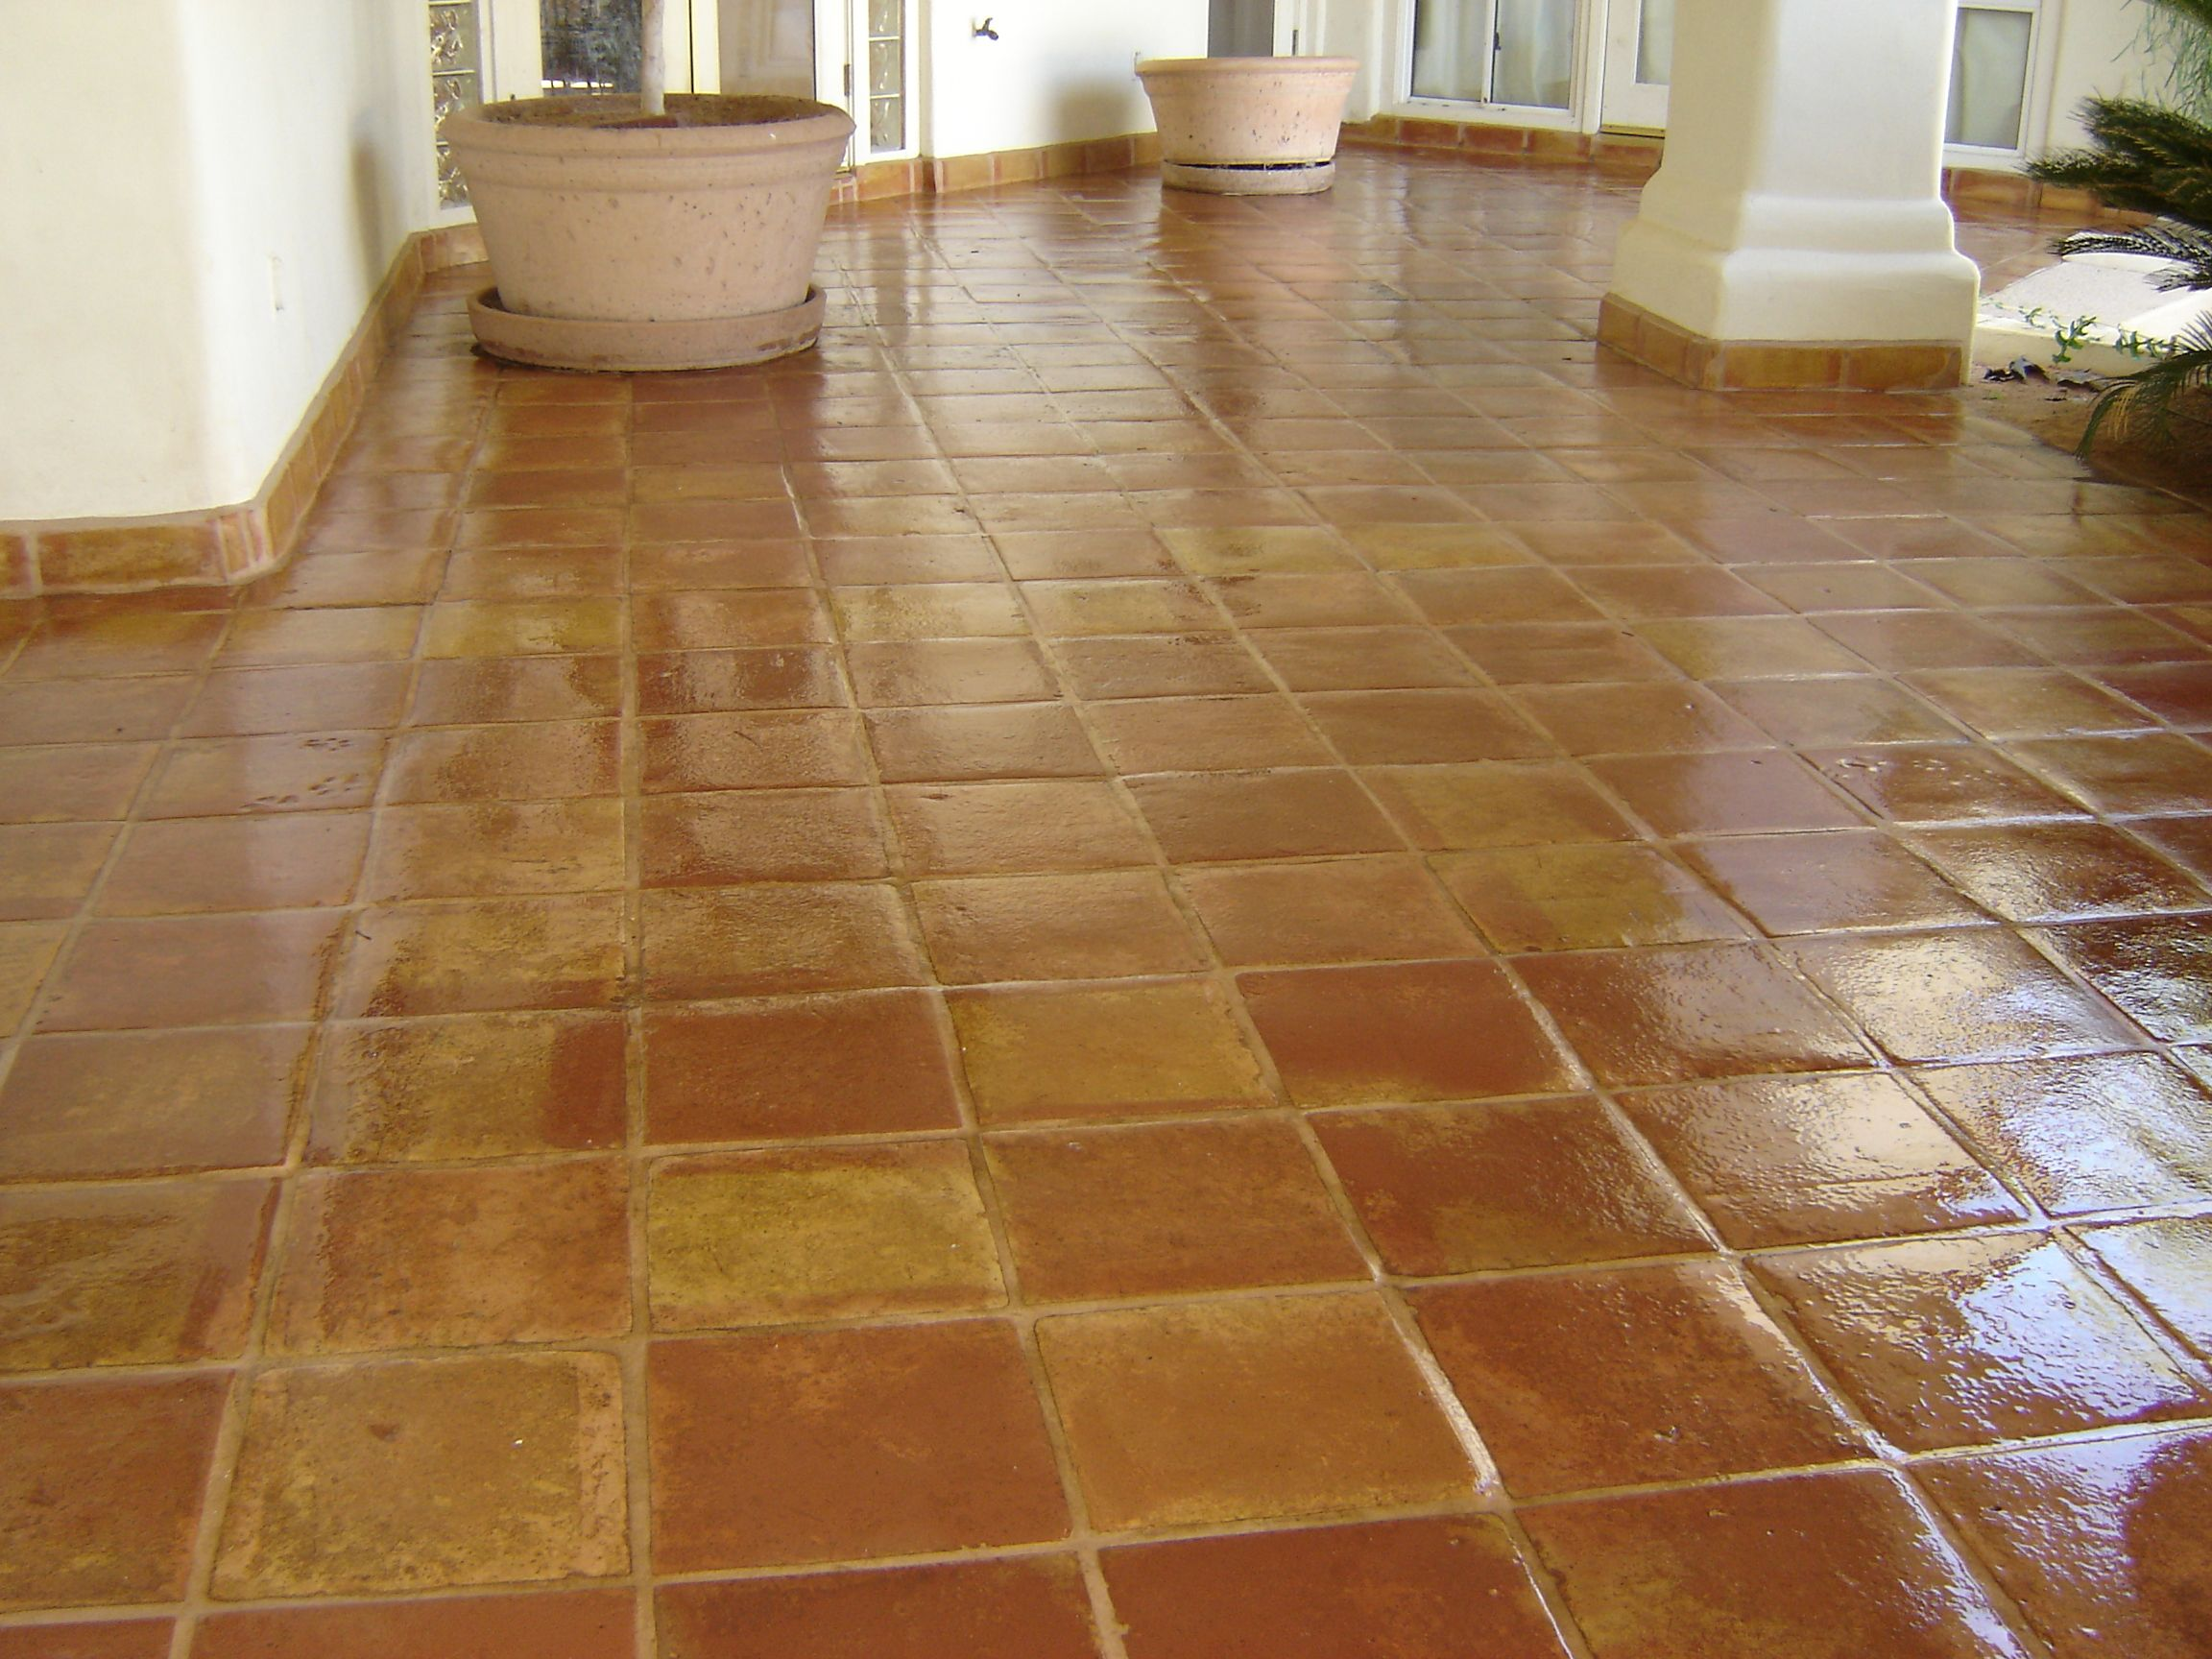 Saltillo tile saltillo saltillo mexican tile pinterest wood make restoring and maintaining your flagstone saltillo tile a breeze by enlisting the professional services of all stonetile wood restoration today dailygadgetfo Gallery